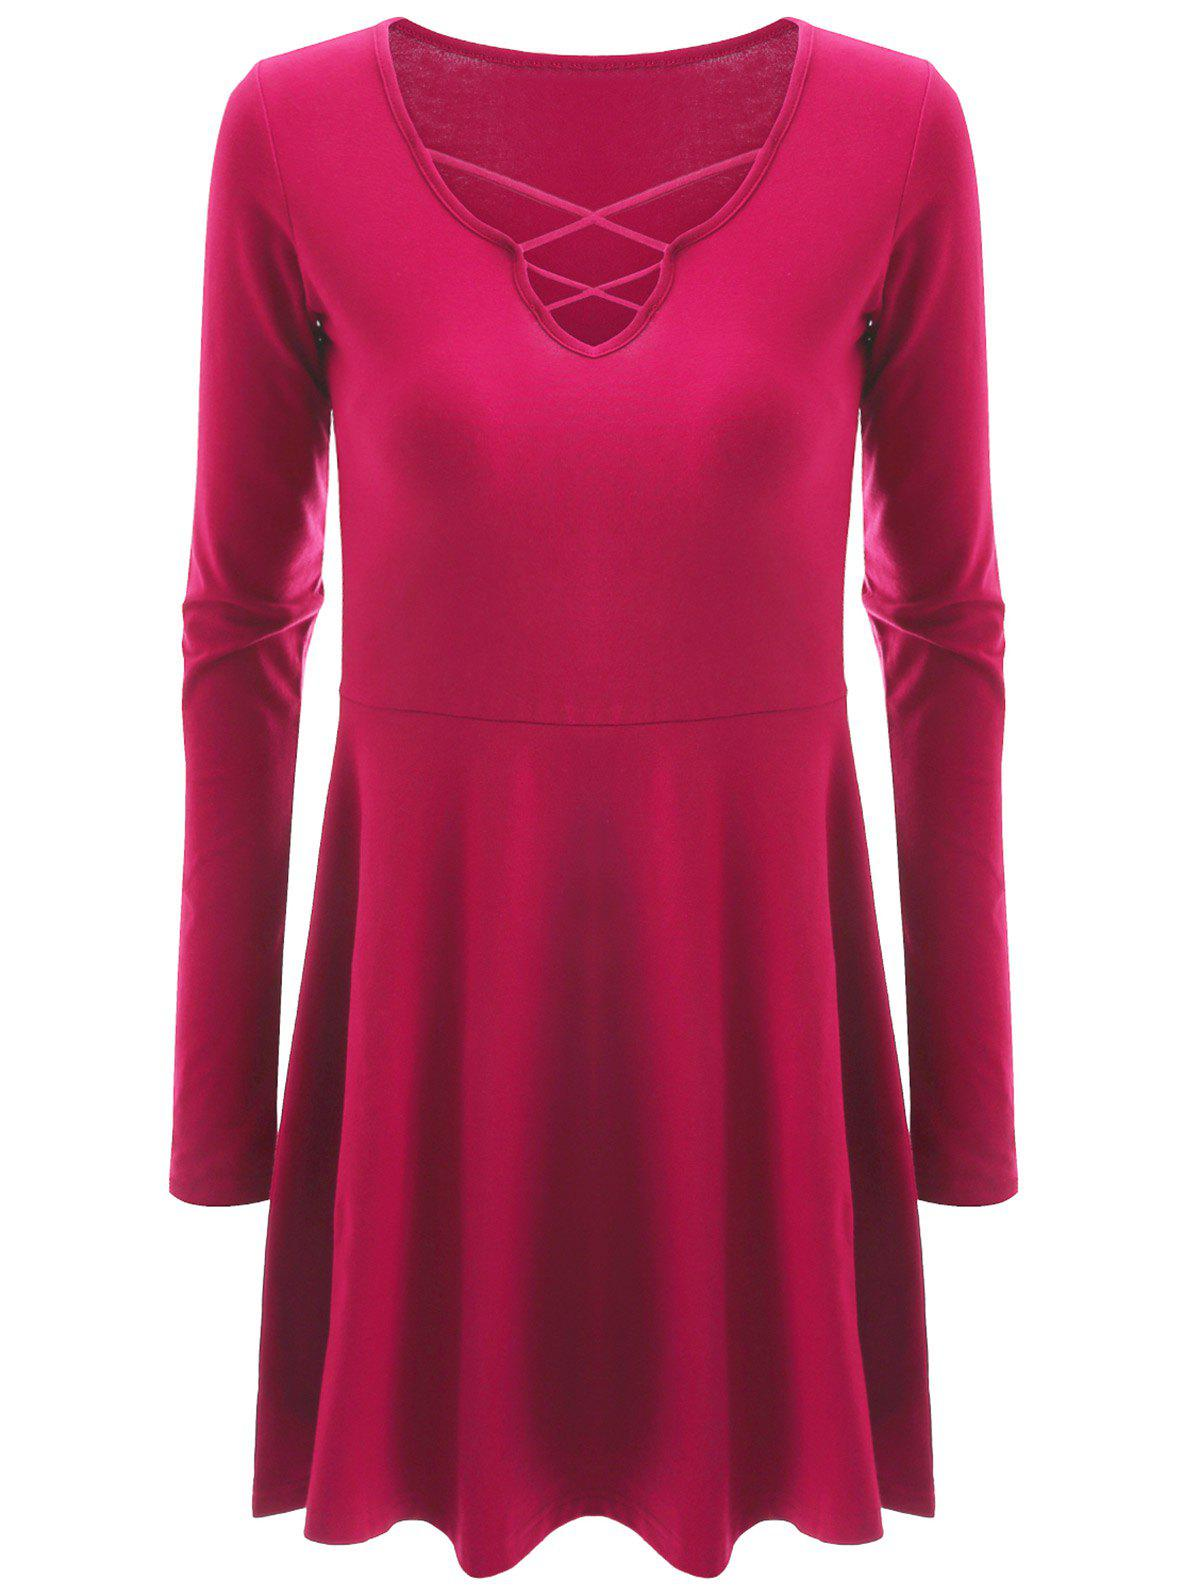 Affordable Criss Cross Plus Size Skirted Tee